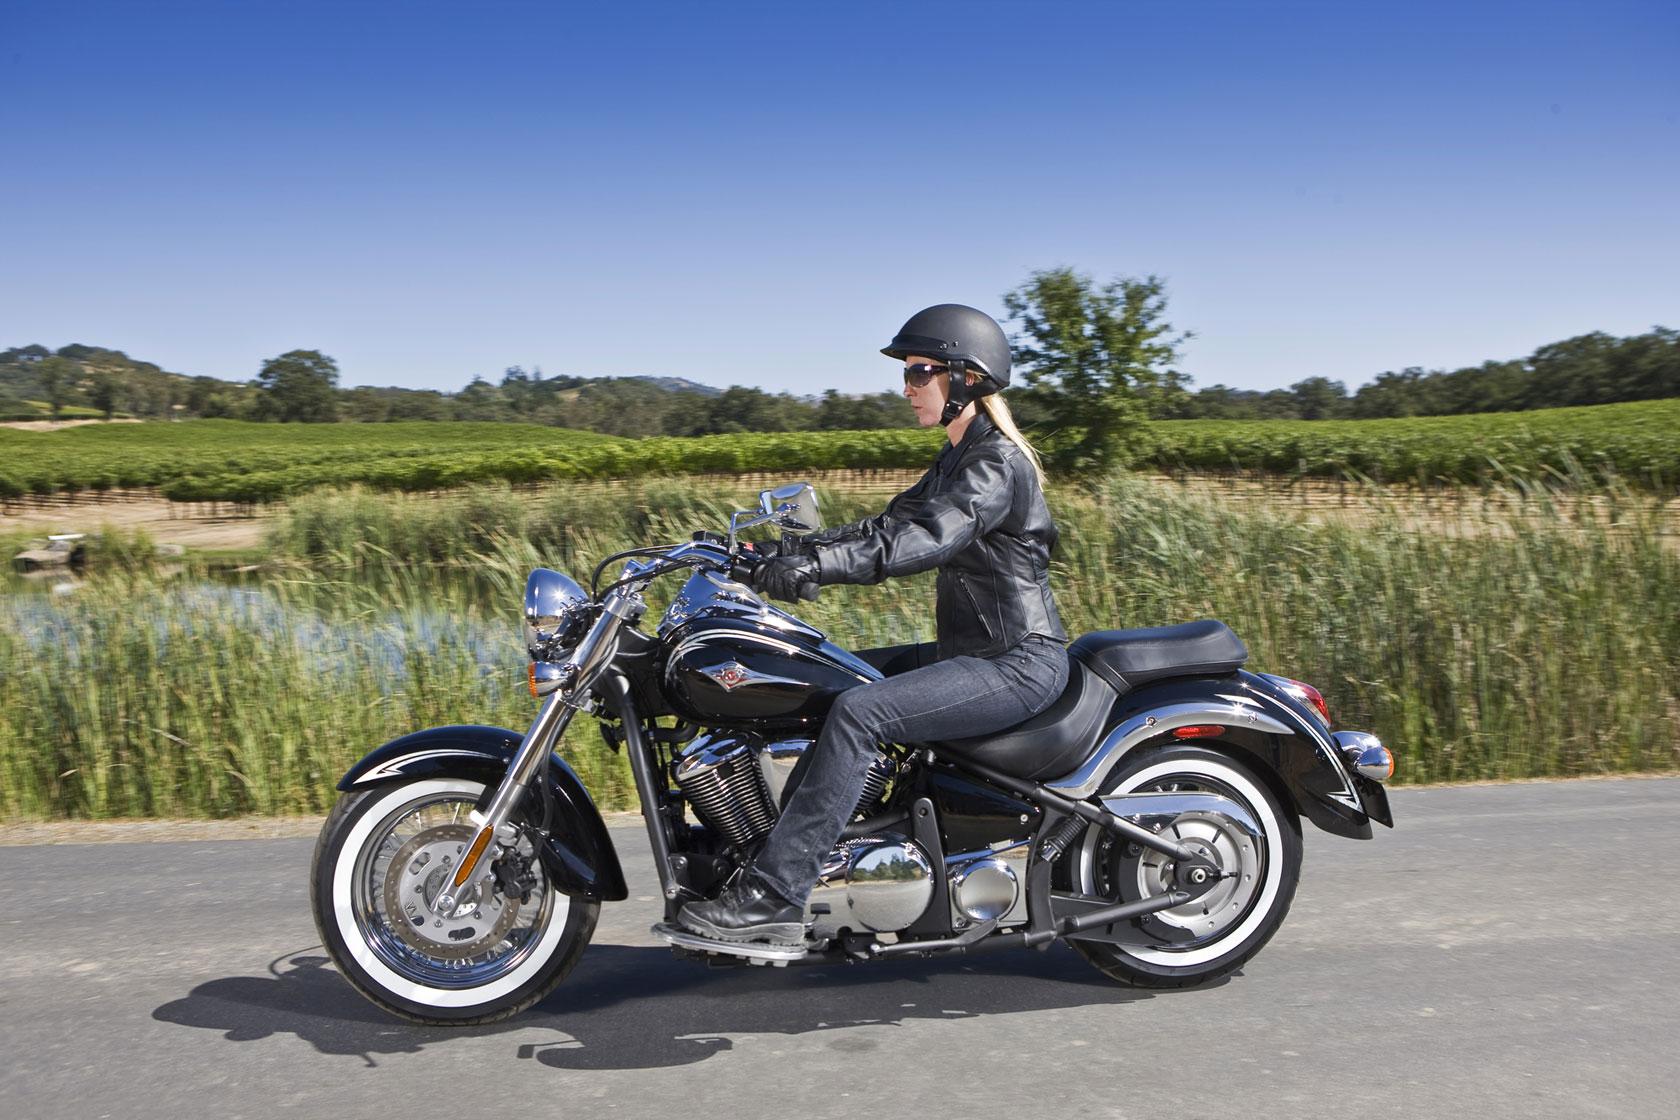 Meancycles 625 Wide Front Fender For Vulcan 900 Classic